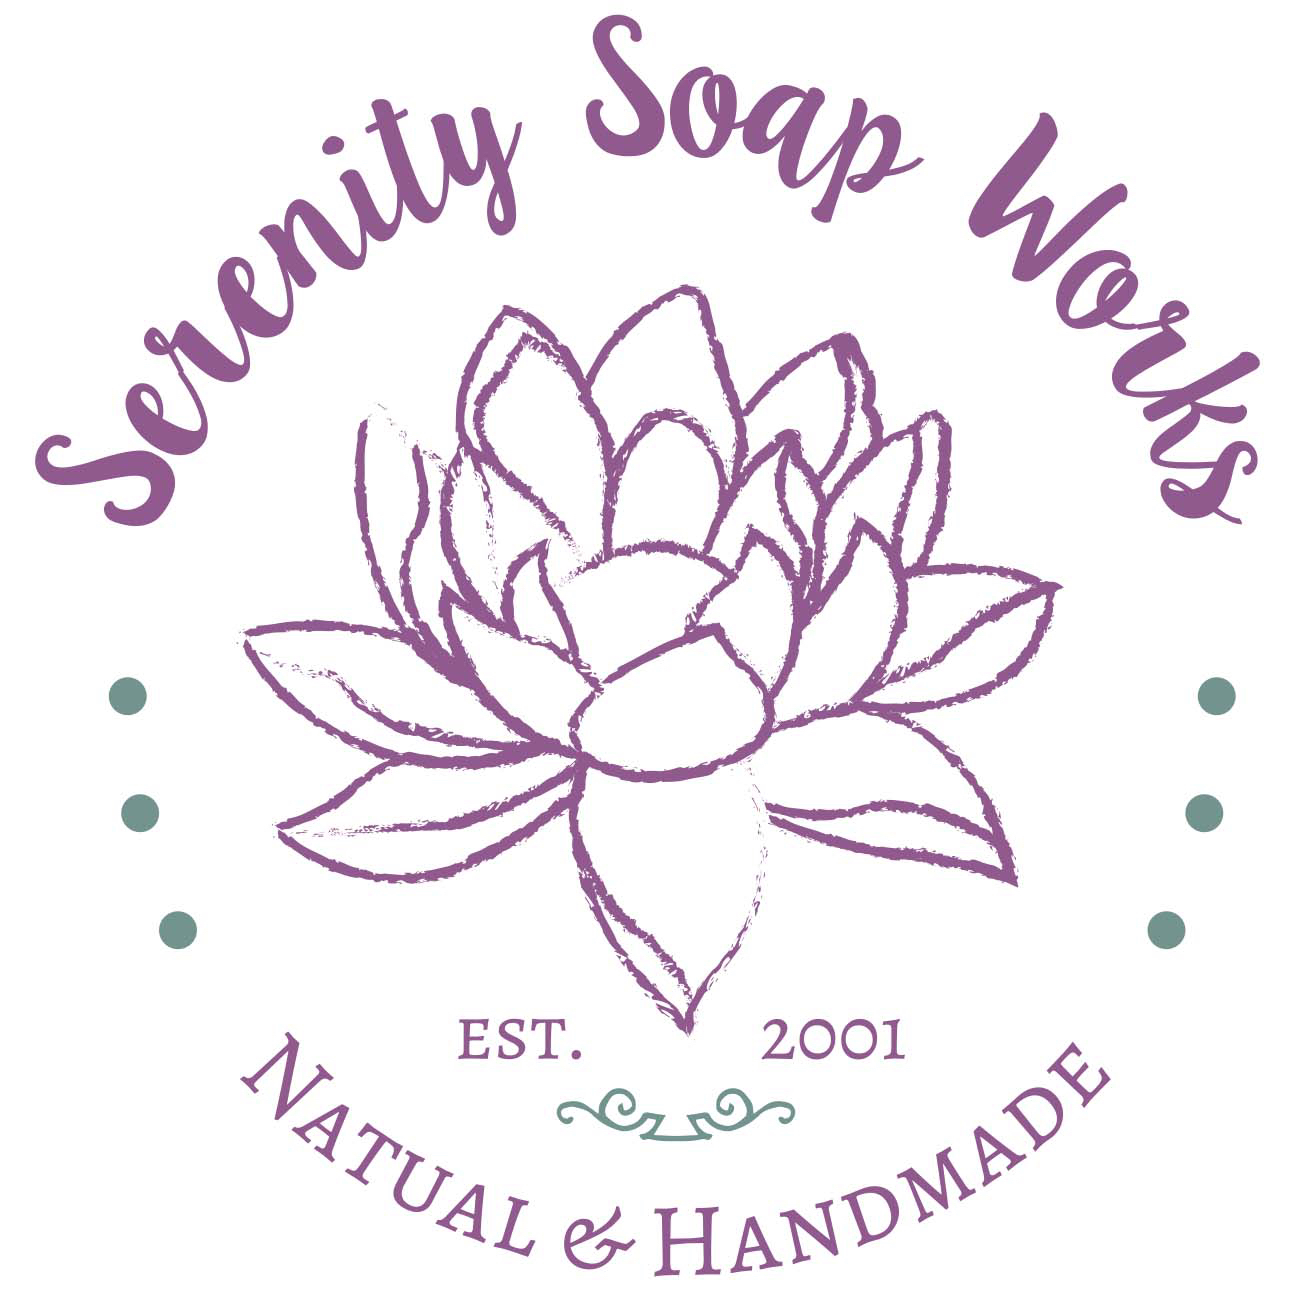 Serenity Soap Works & Oak Hollow Acres